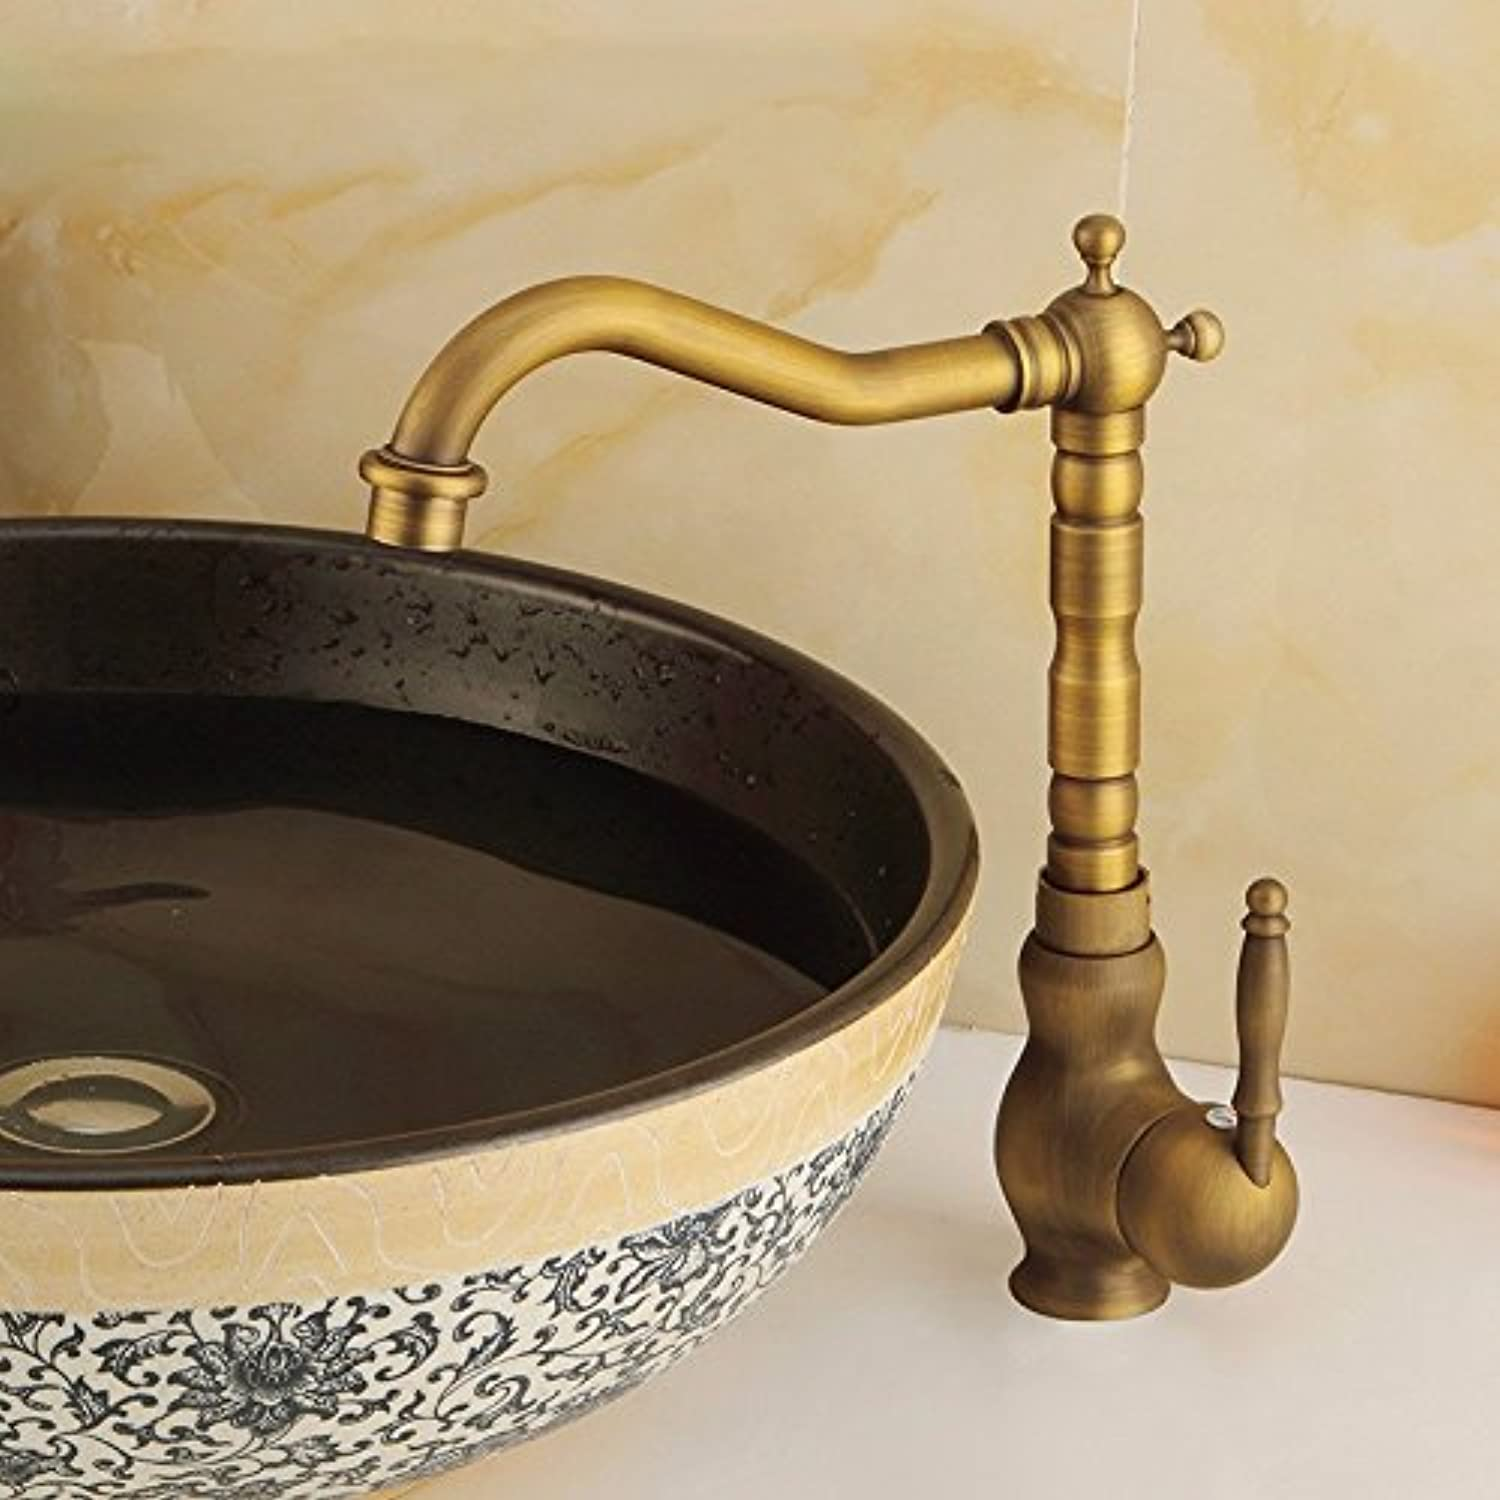 MDRW-Bathroom Accessories Basin Faucet All Copper Hot And Cold Water Tap Mixed Household Duplex Basin Owan Taps Water Heating Metal Kitchen Tap